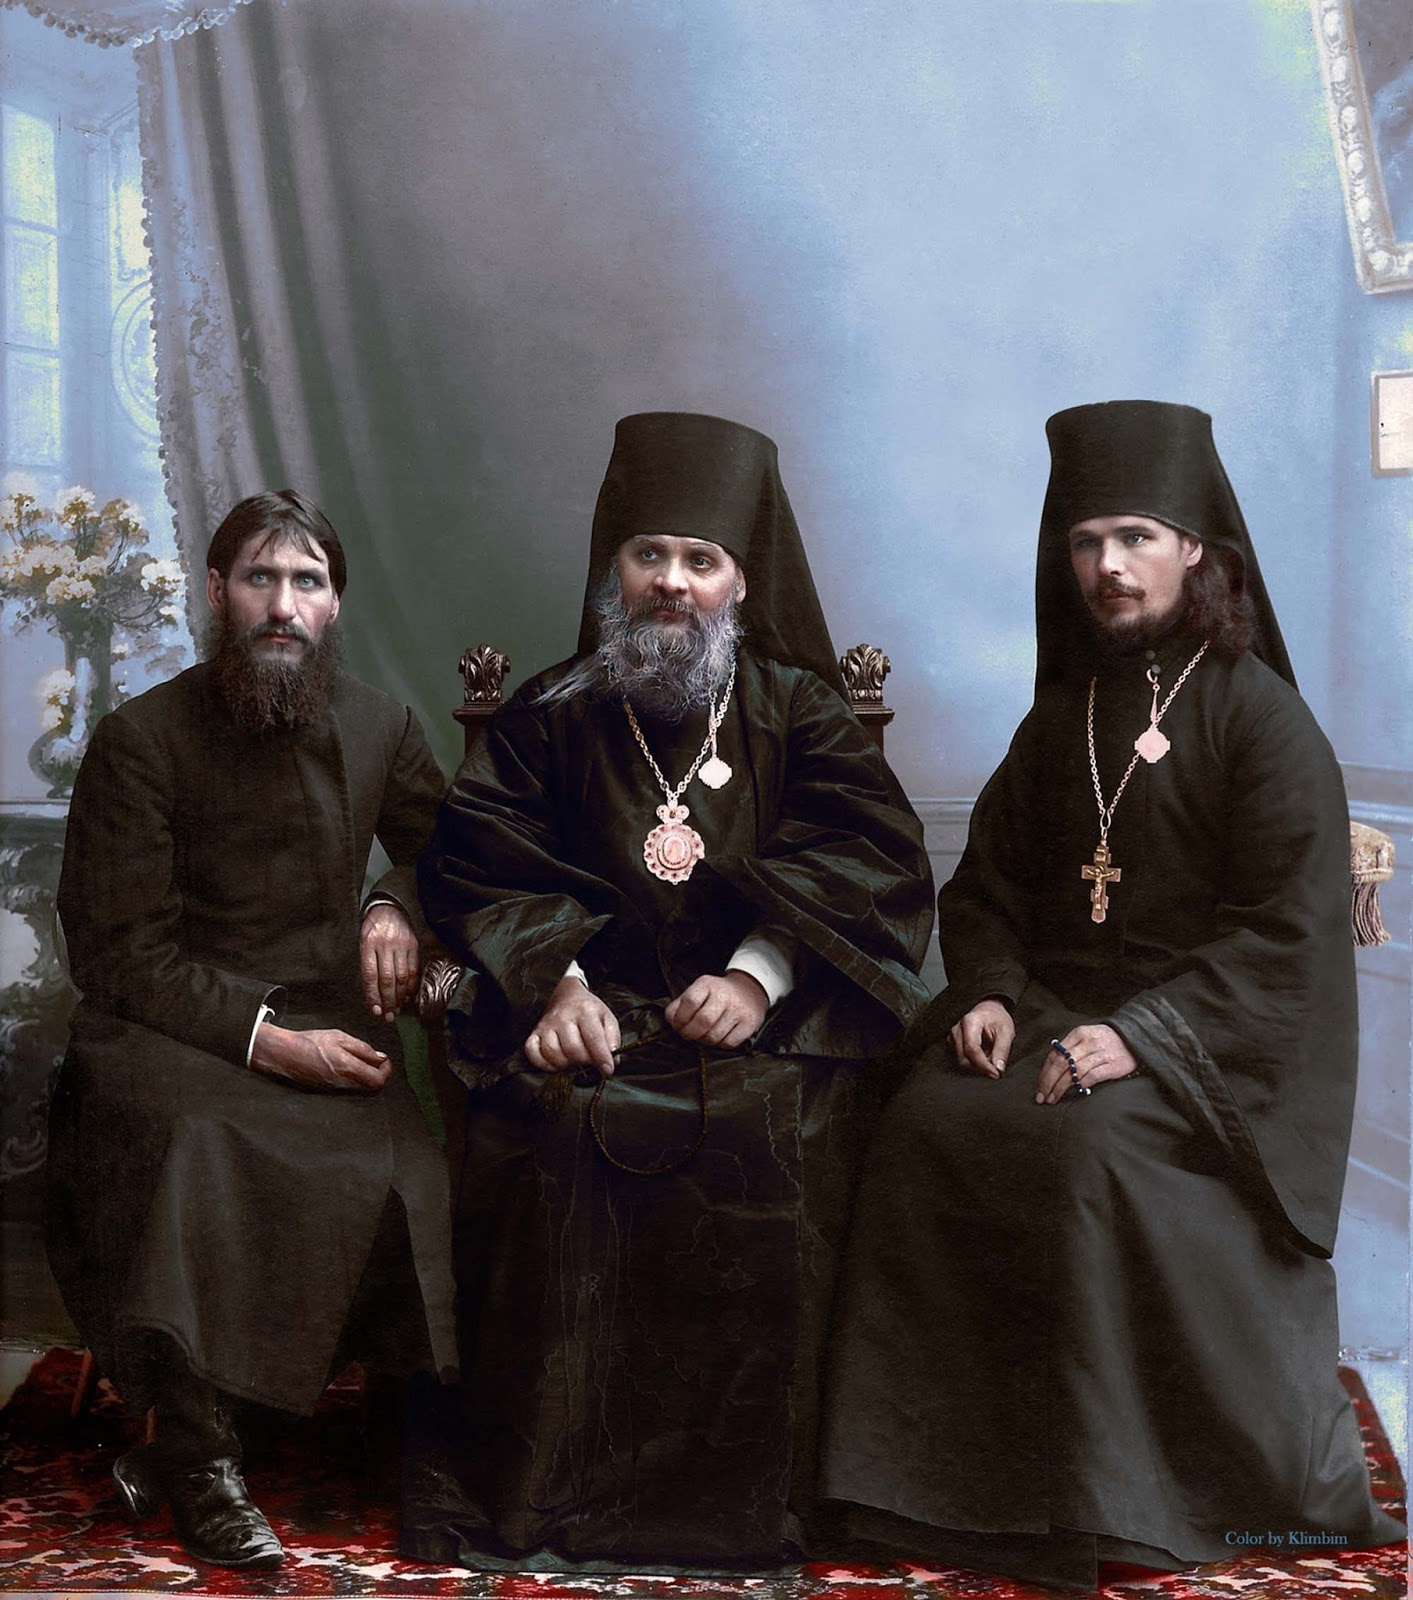 Rasputin, Hermogen and Iliodor next to each other in 1906. Within a few years the three men became bitter enemies.